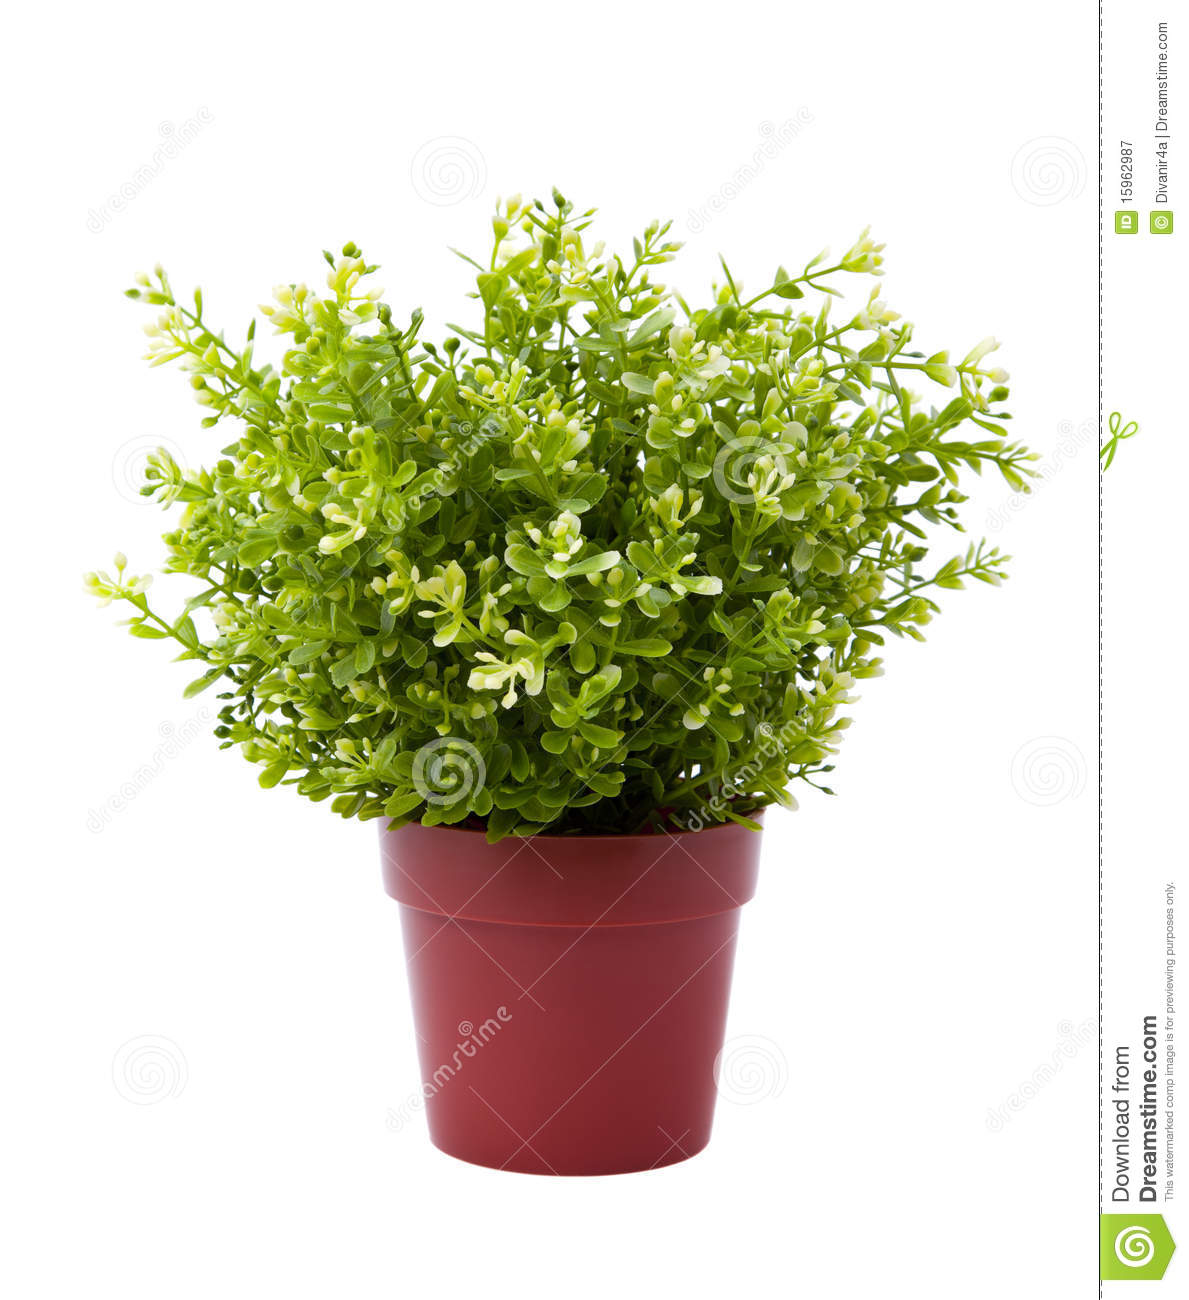 Royalty free plant images png library library Plant Pot Royalty Free Stock Photography - Image: 15962987 png library library